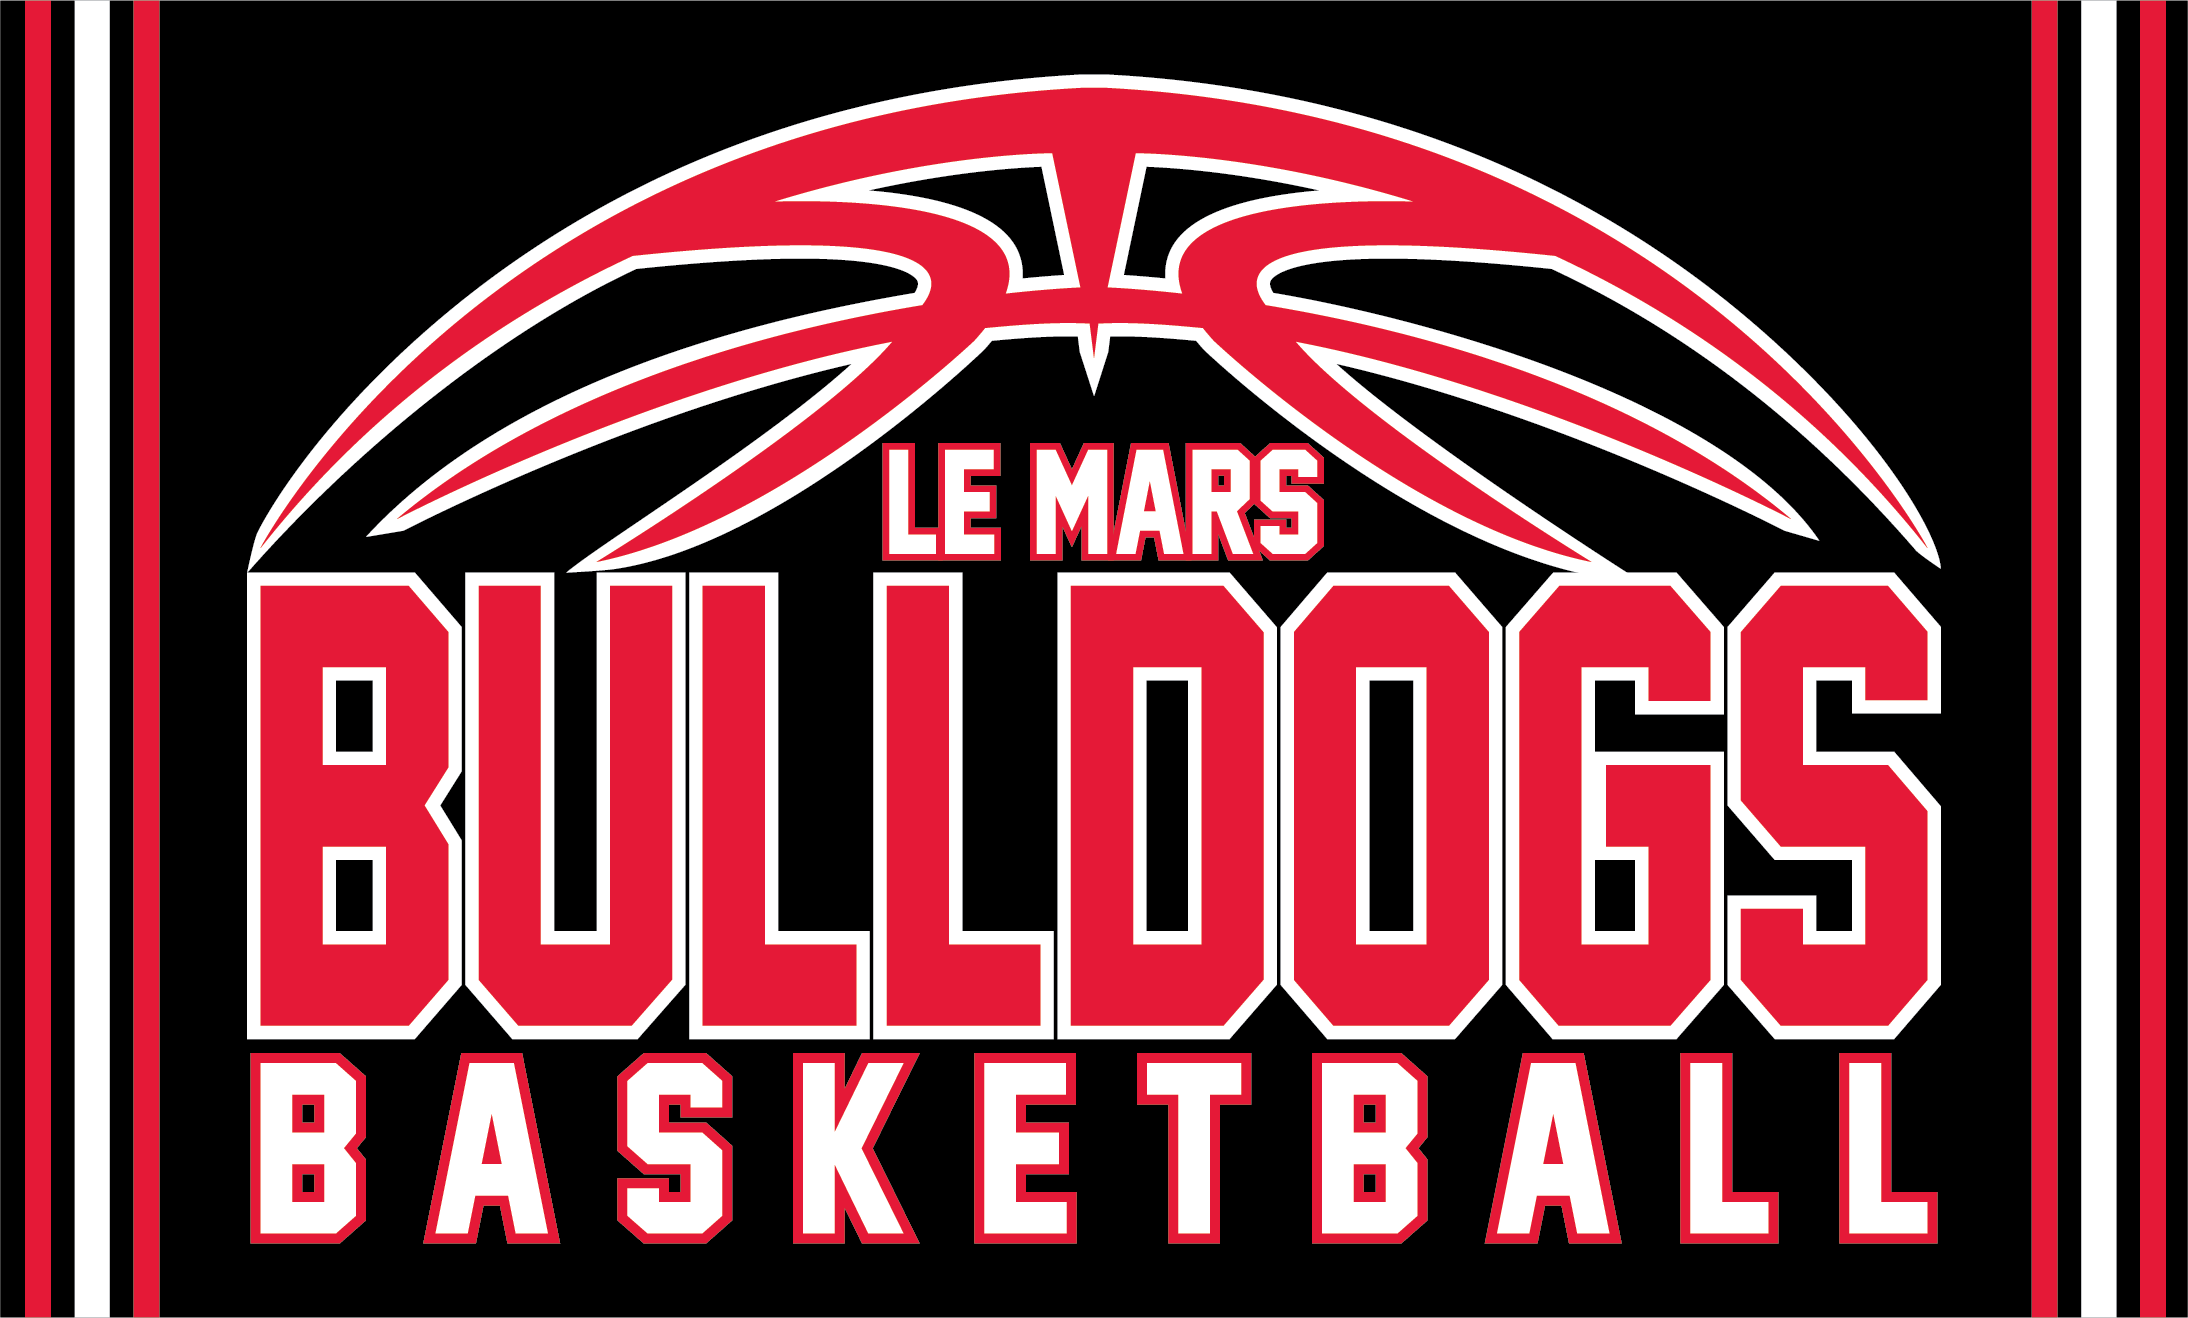 Le Mars Bulldog Basketball